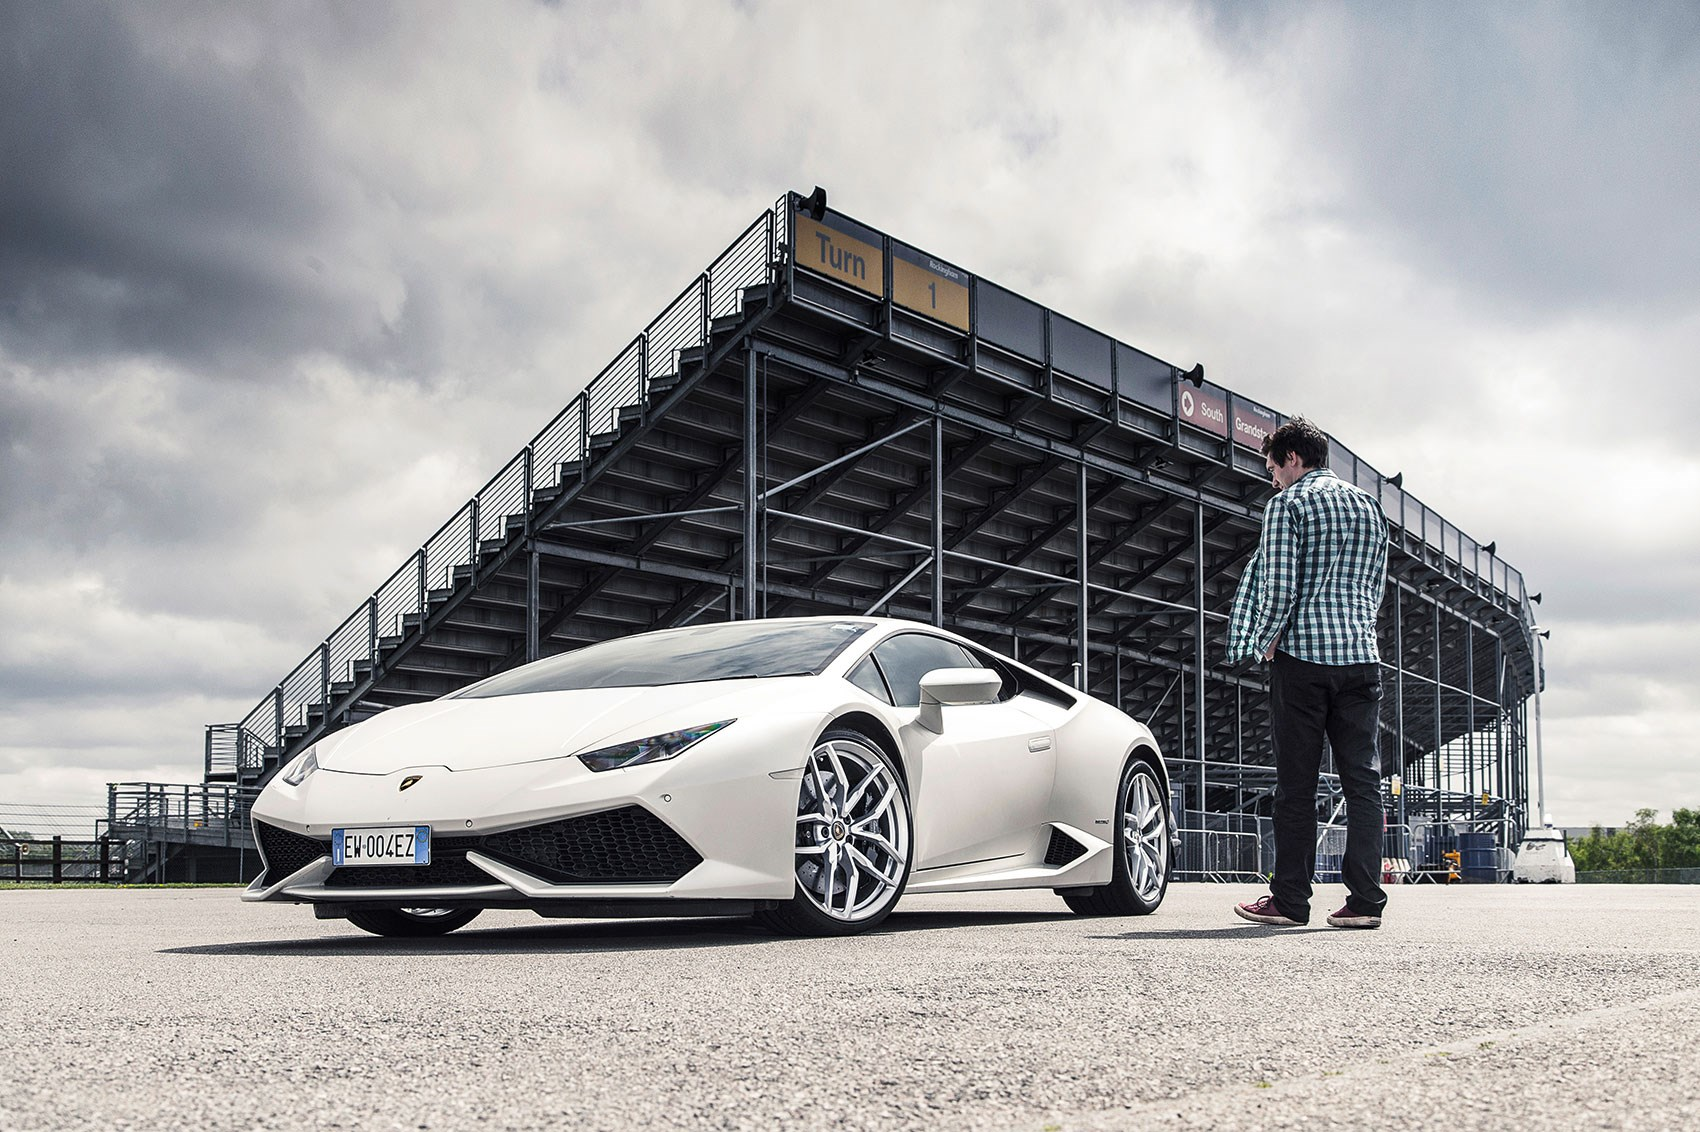 fe79f5d4199 Lamborghini Huracan LP610-4  long-term test review (2015)